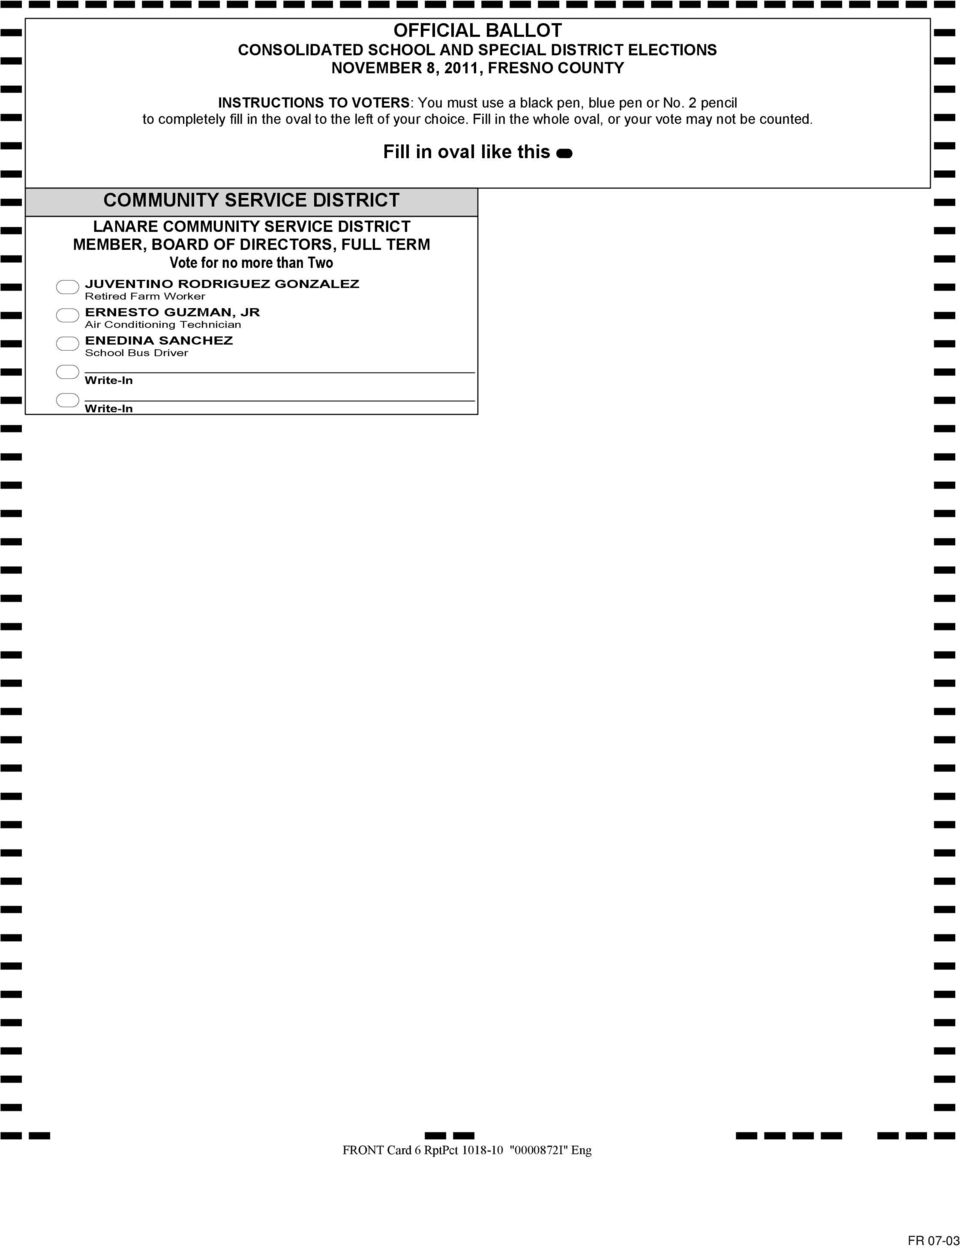 Fill in oval like this COMMUNITY SERVICE DISTRICT LANARE COMMUNITY SERVICE DISTRICT MEMBER, BOARD OF DIRECTORS, FULL TERM Vote for no more than Two JUVENTINO